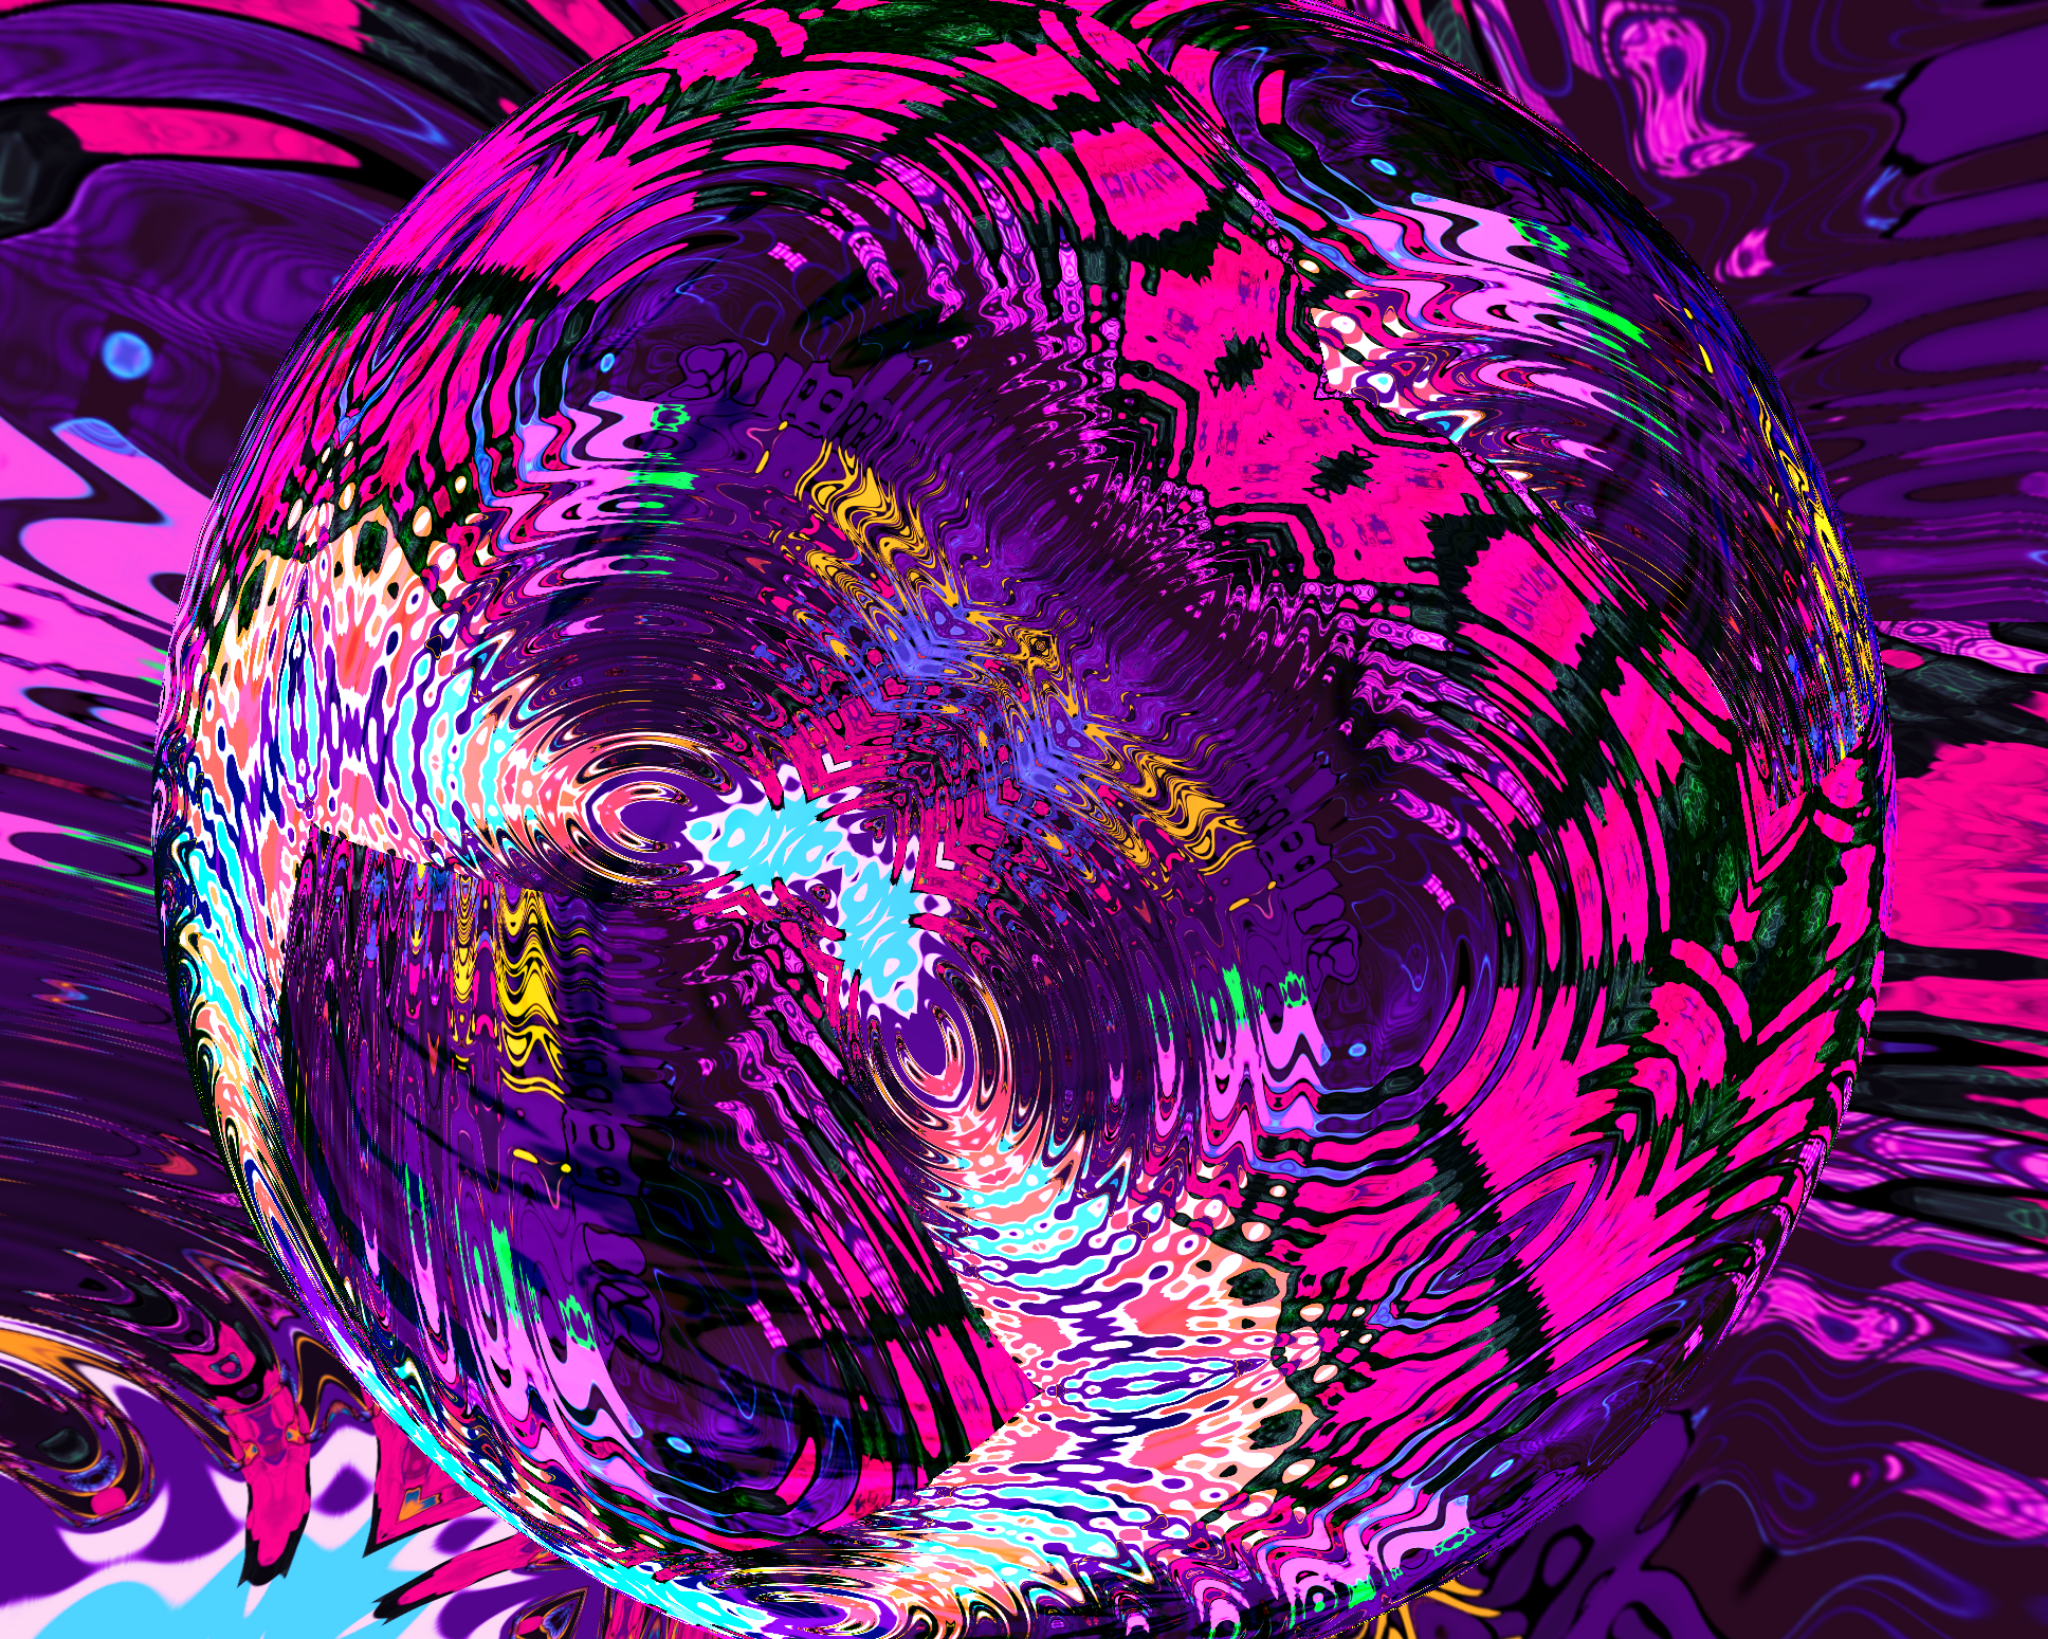 image3A2858_mirror2.png